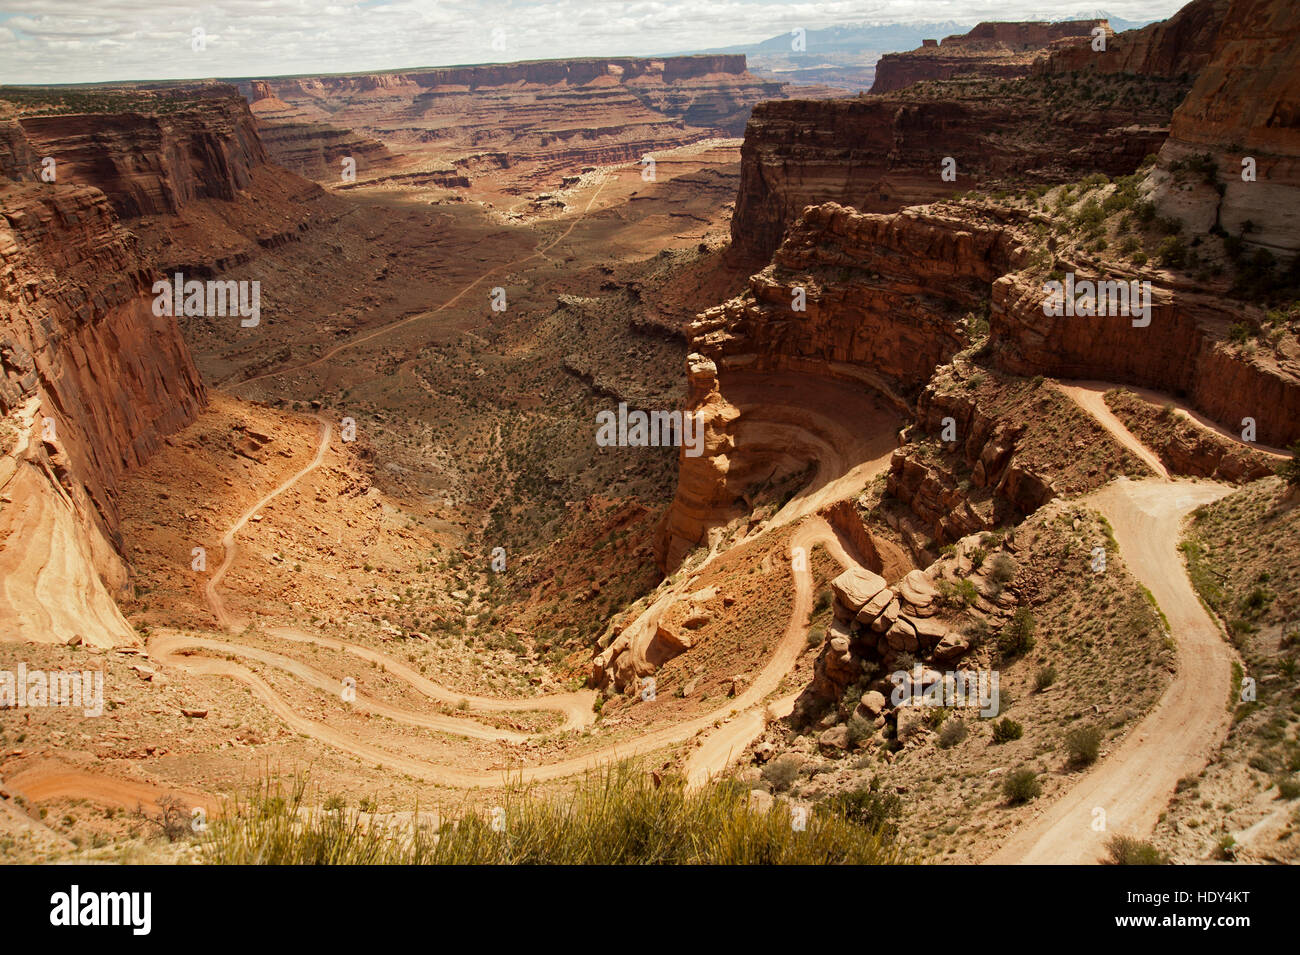 Shafer train winding road as it descends 18 miles and several thousand feet to the White rim trail of Canyonland - Stock Image